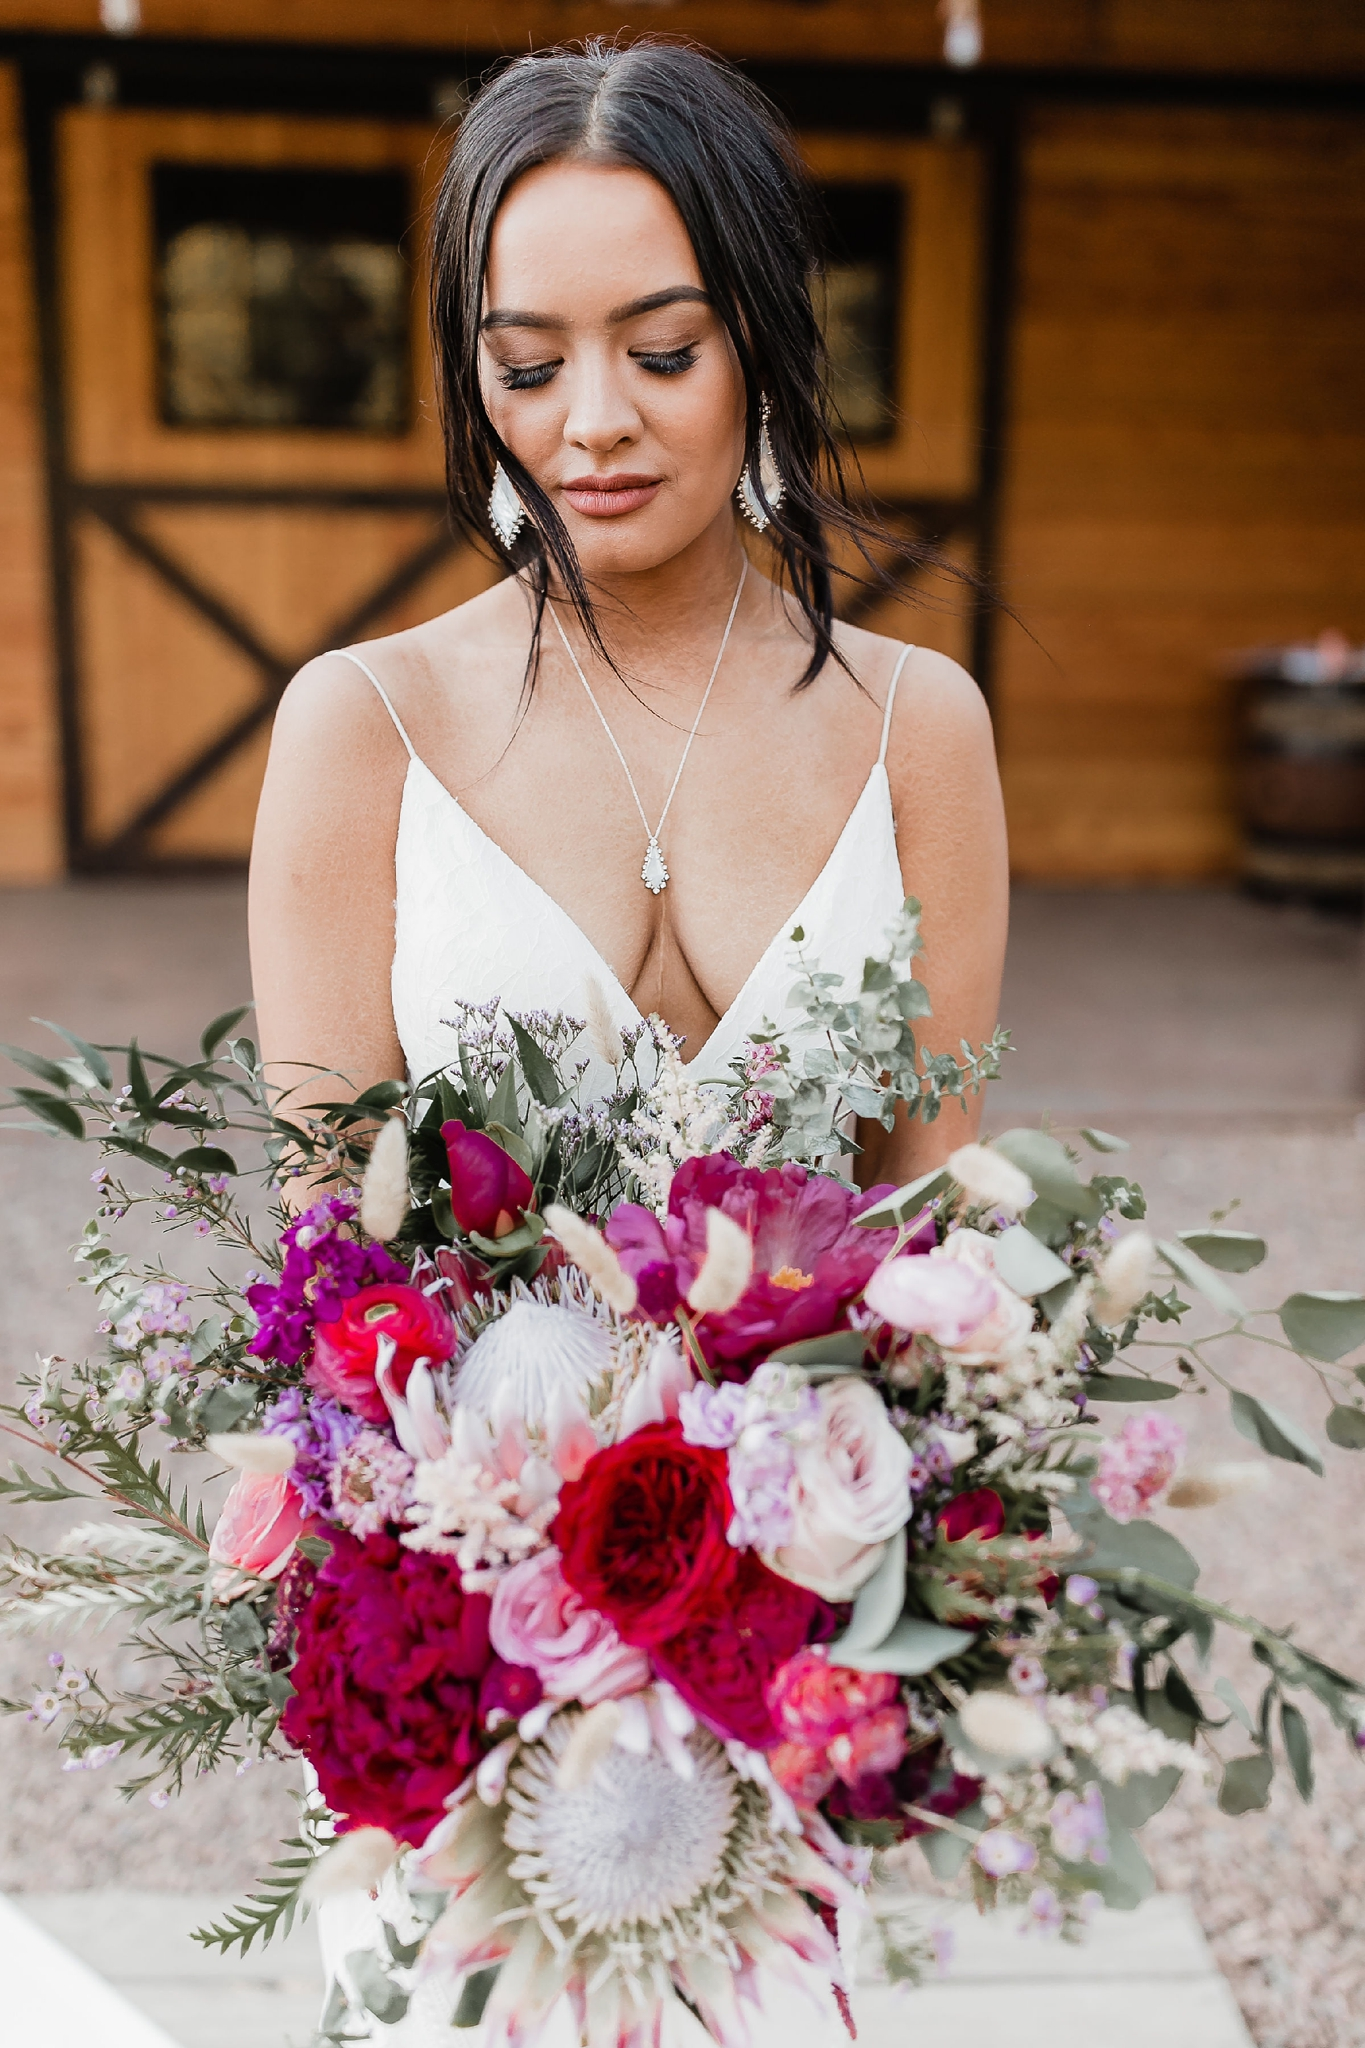 Alicia+lucia+photography+-+albuquerque+wedding+photographer+-+santa+fe+wedding+photography+-+new+mexico+wedding+photographer+-+new+mexico+wedding+-+summer+wedding+-+summer+wedding+florals+-+southwest+wedding_0016.jpg